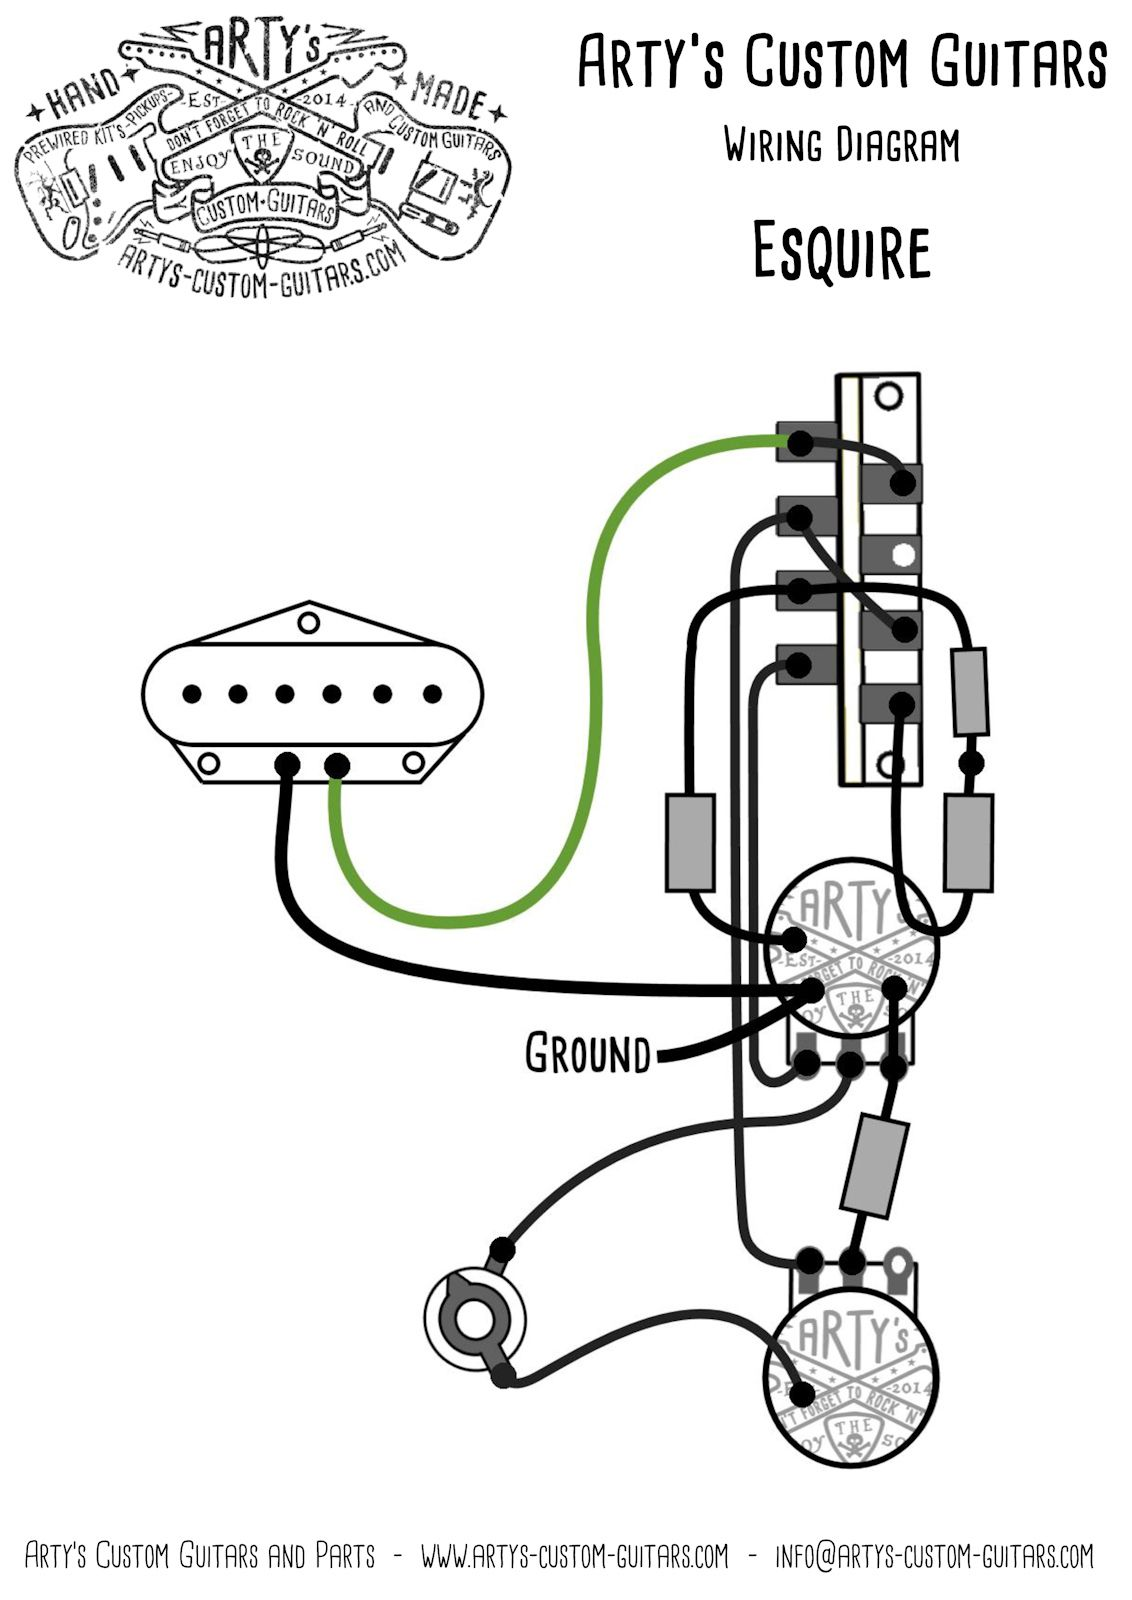 26 Esquire Wiring Diagram